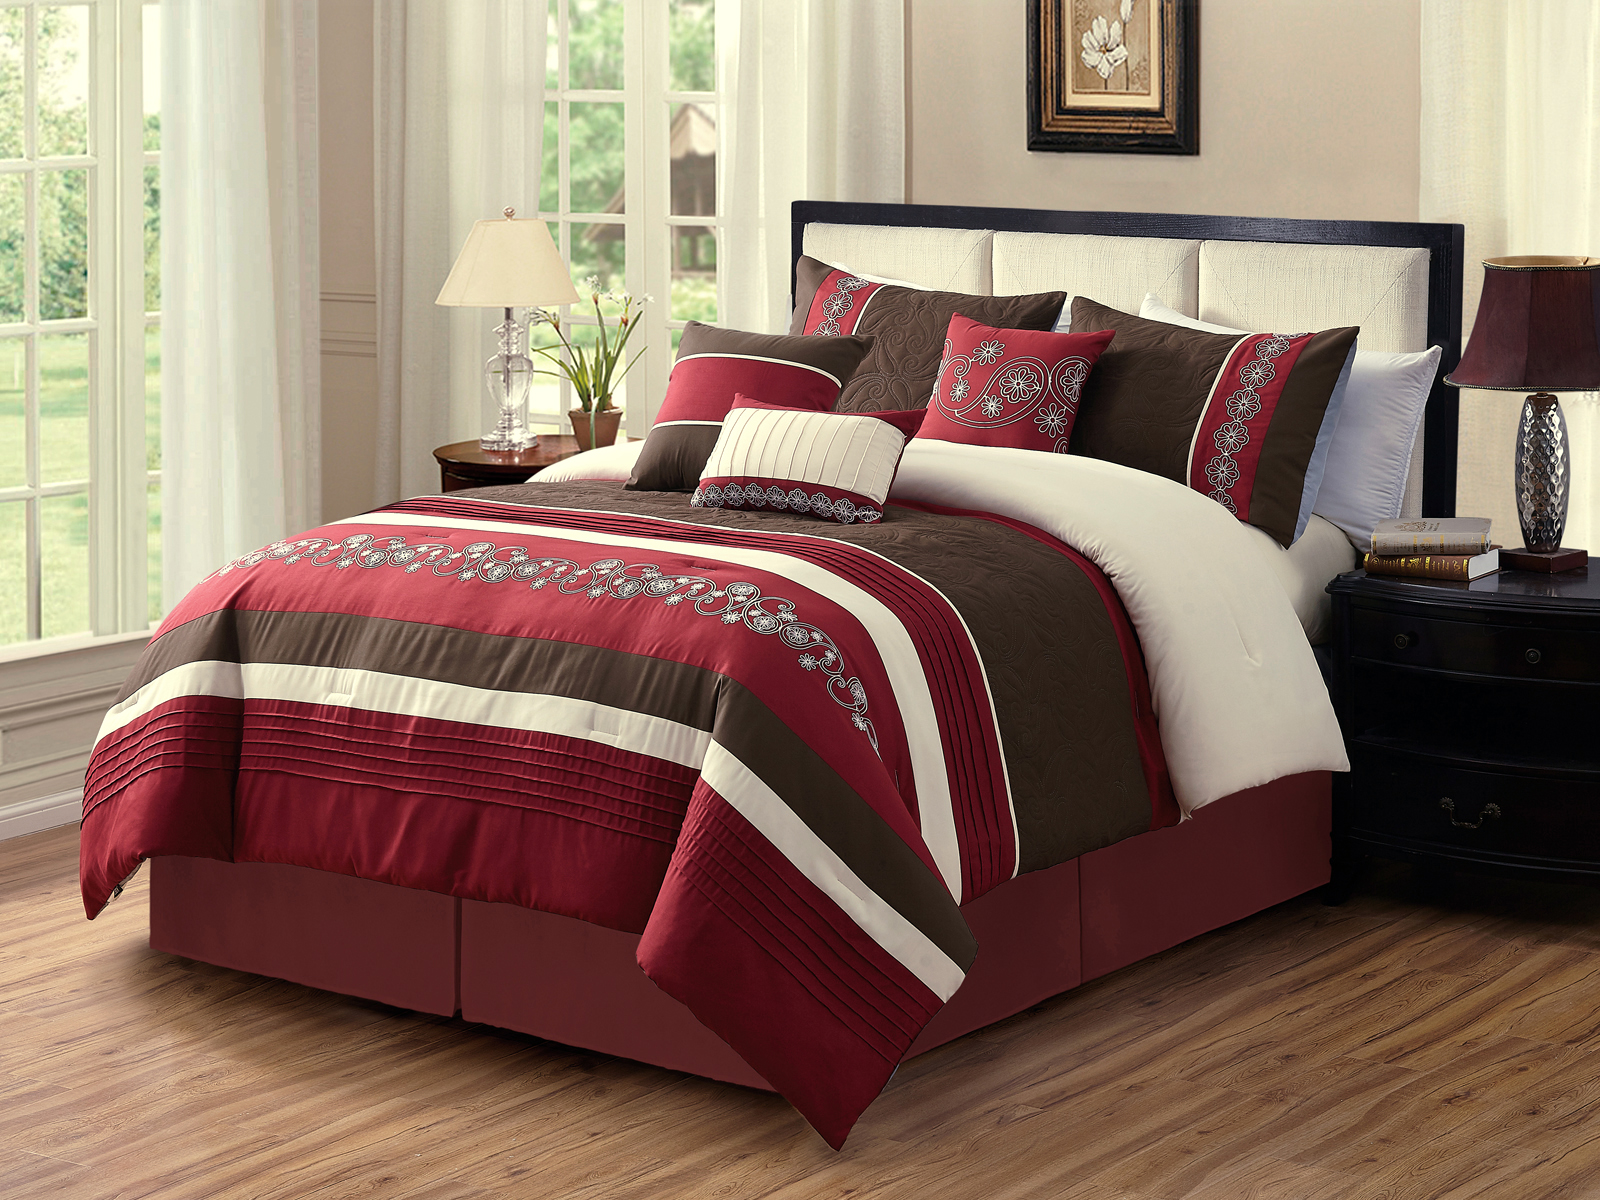 11 pc jools paisley floral embroidery embossed pleated stripe comforter curtain set burgundy brown ivory queen